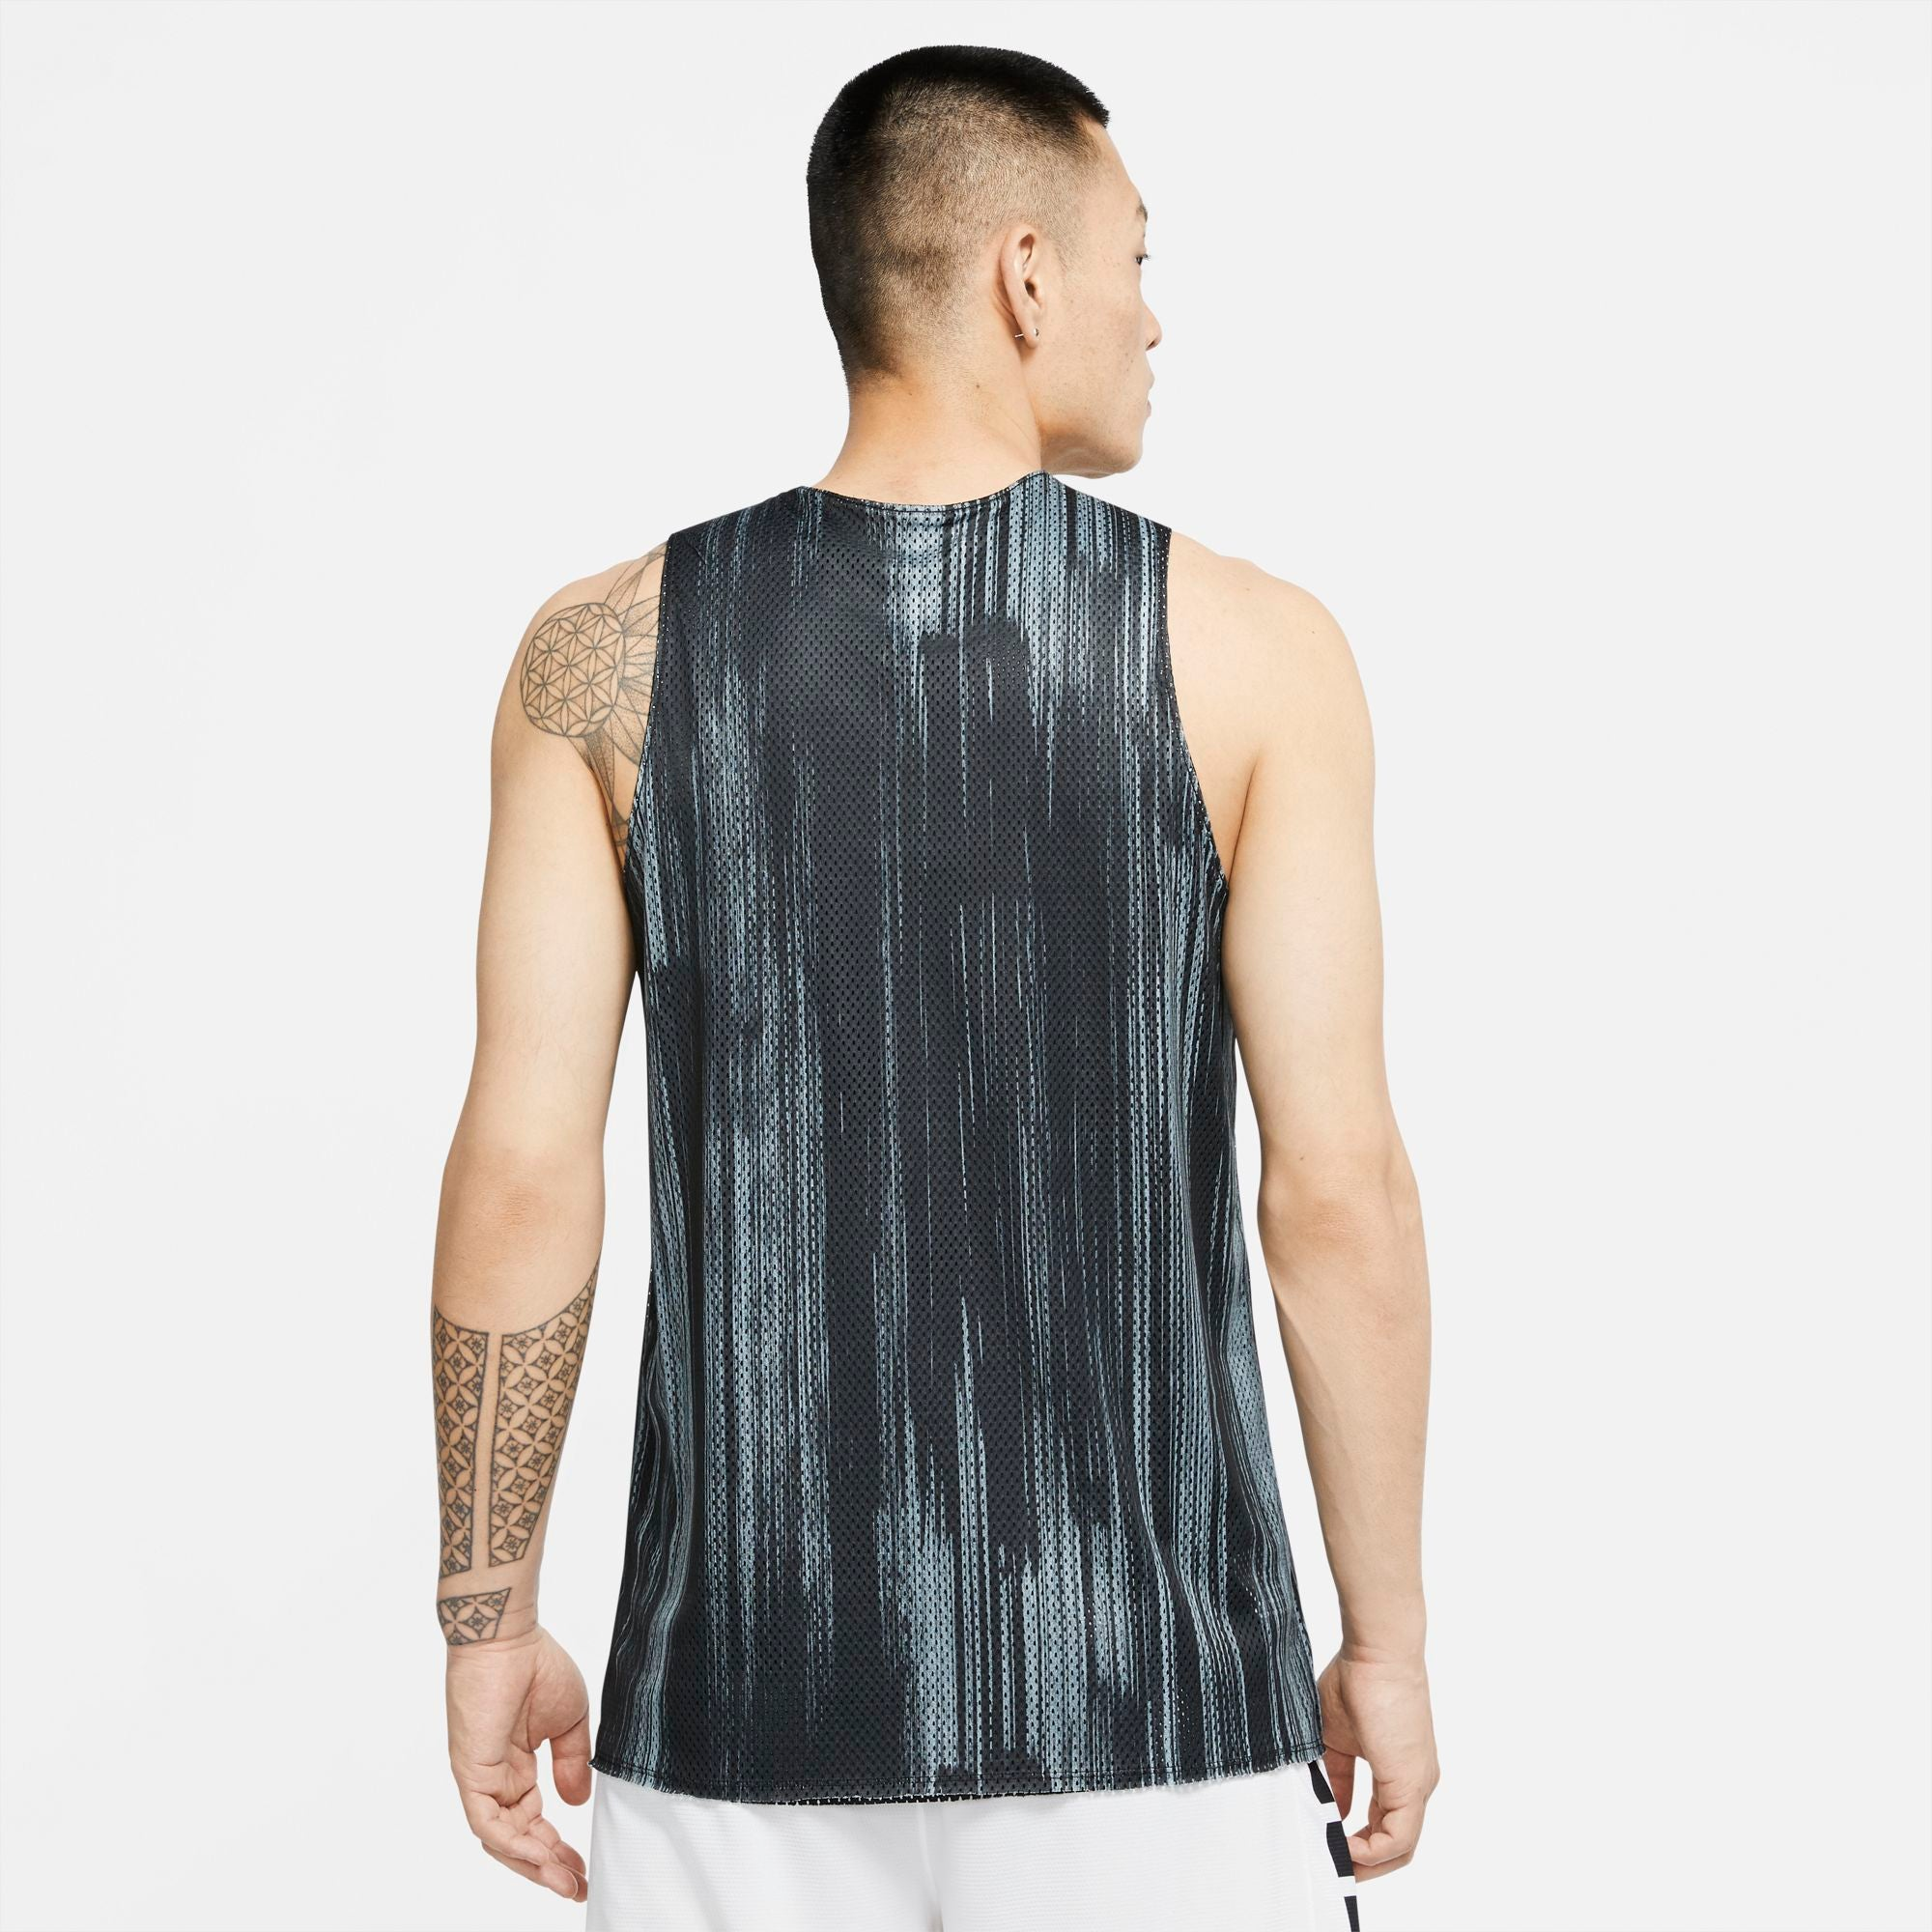 Nike KD Dri-fit Reversible Basketball Jersey - Black/White